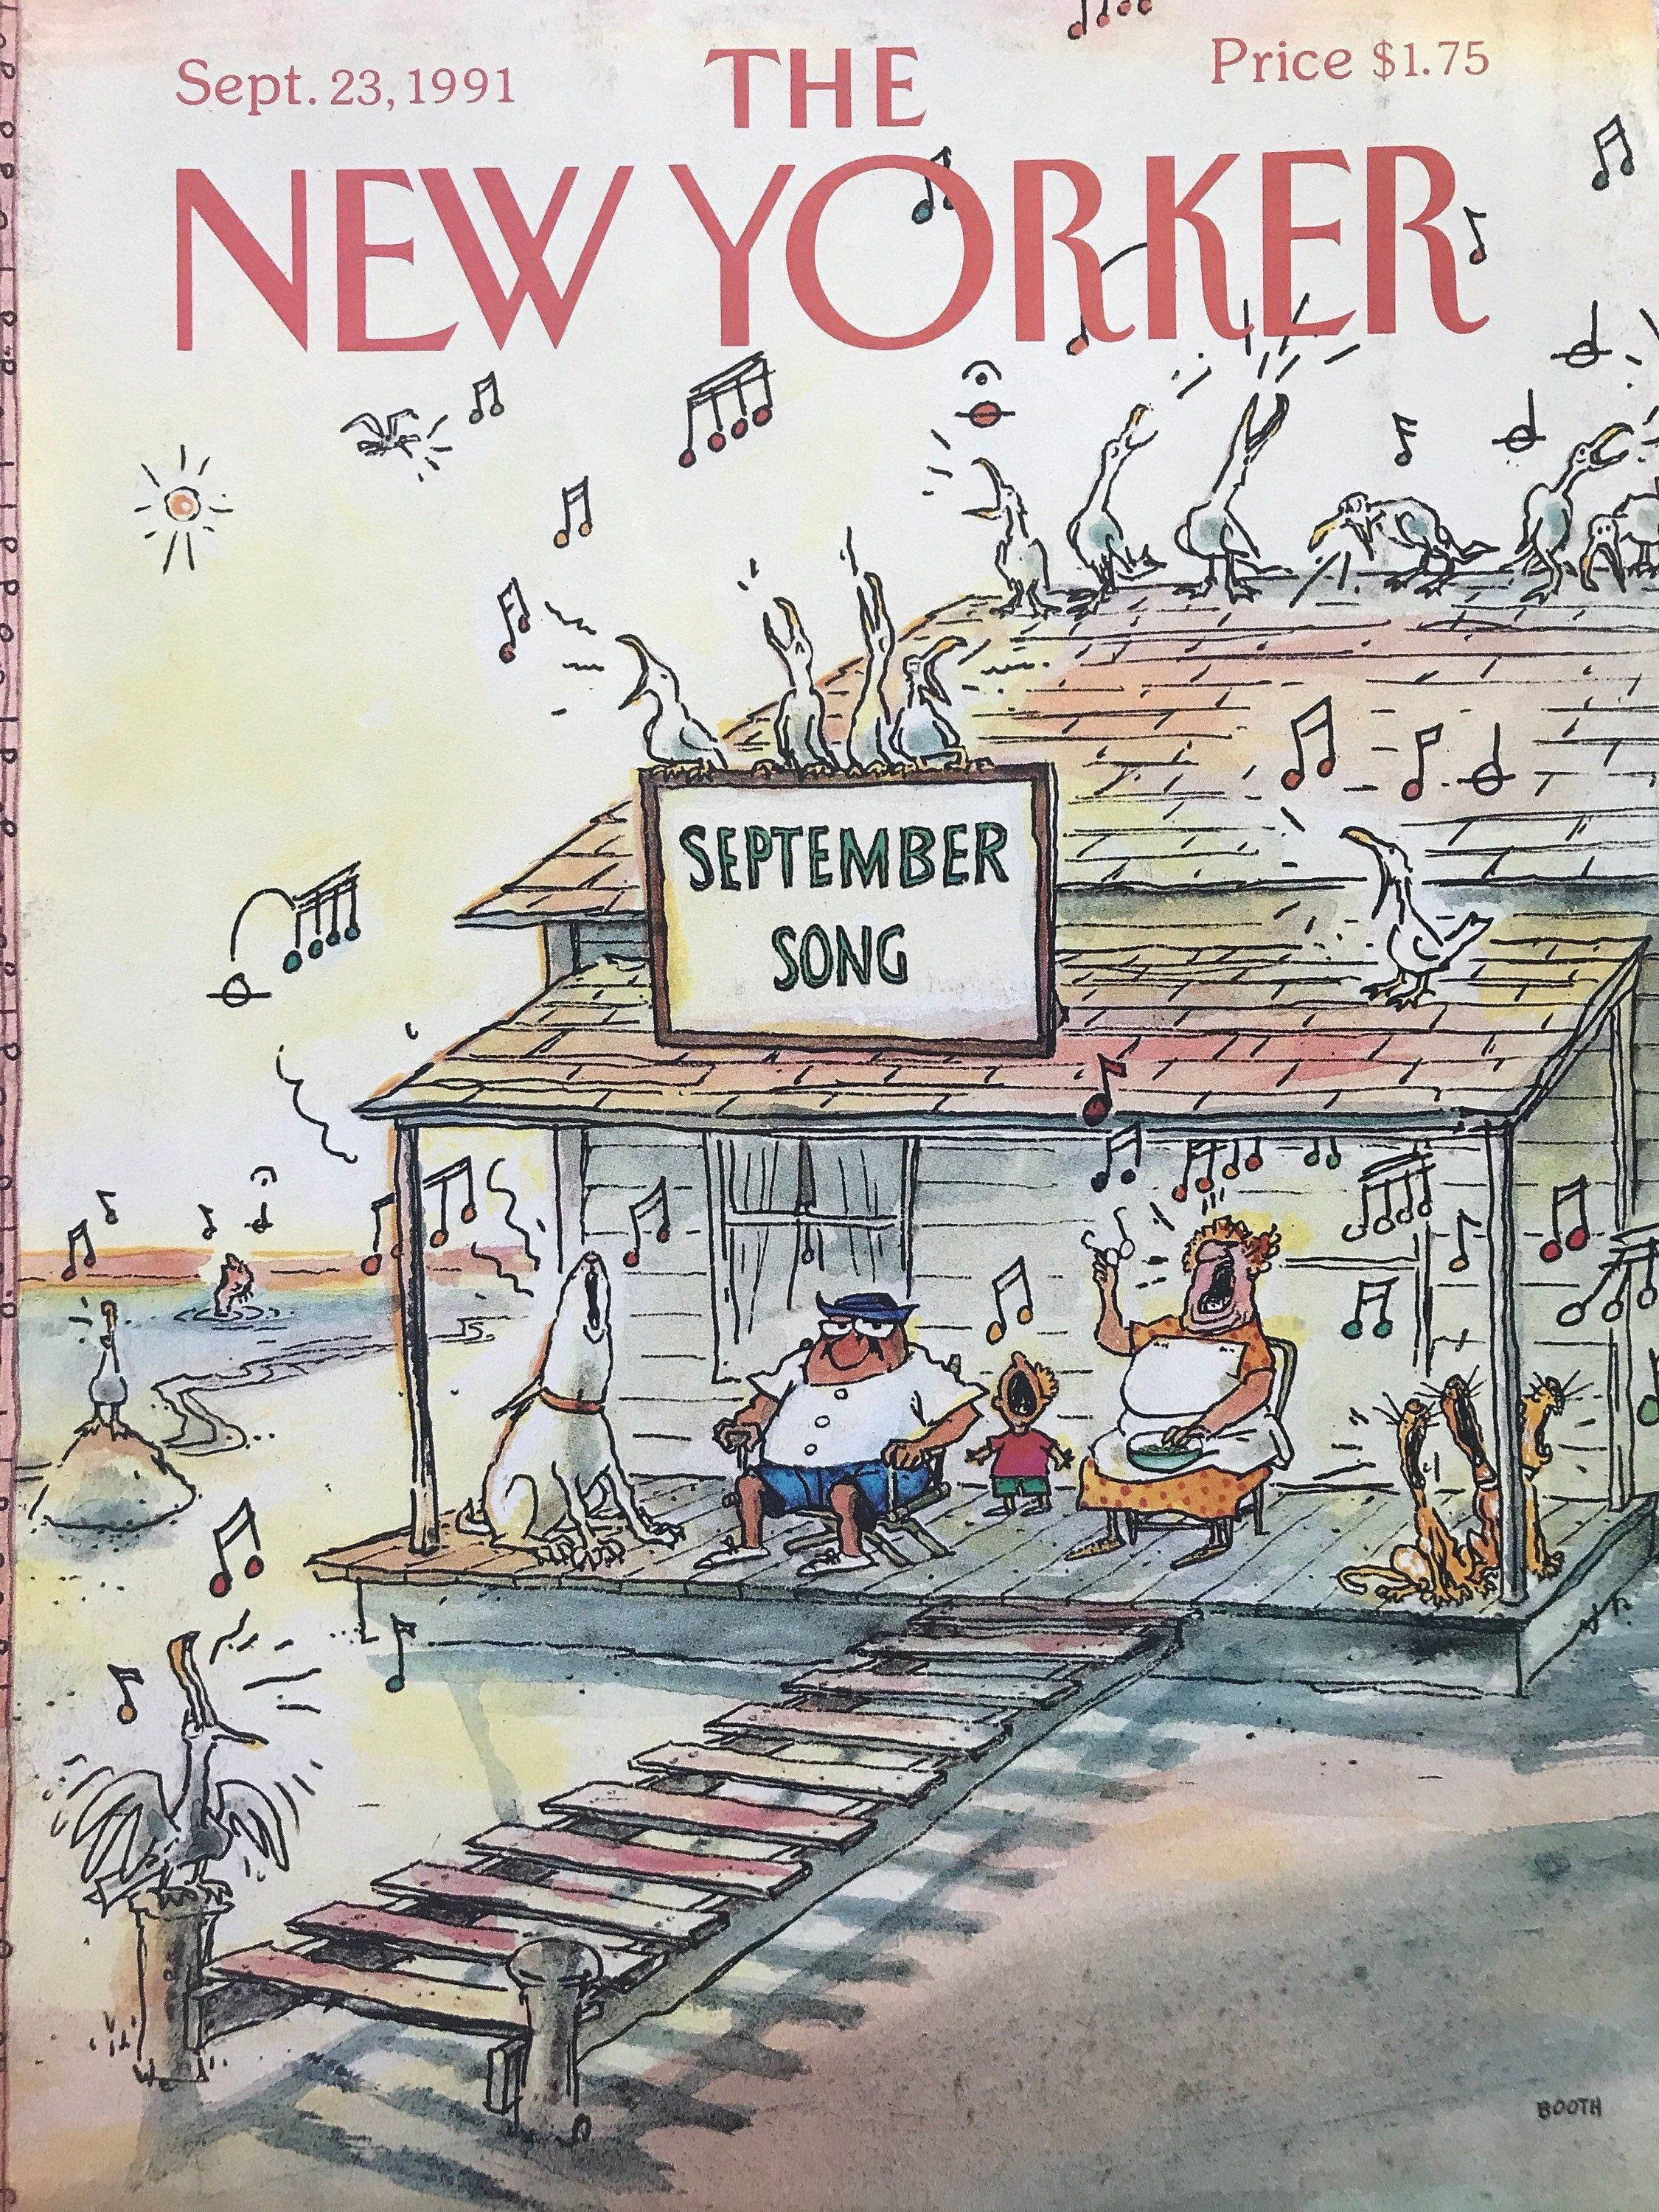 September 23 1991 The New Yorker Complete Magazine In Etsy In 2021 New Yorker Covers The New Yorker The New Yorker Covers